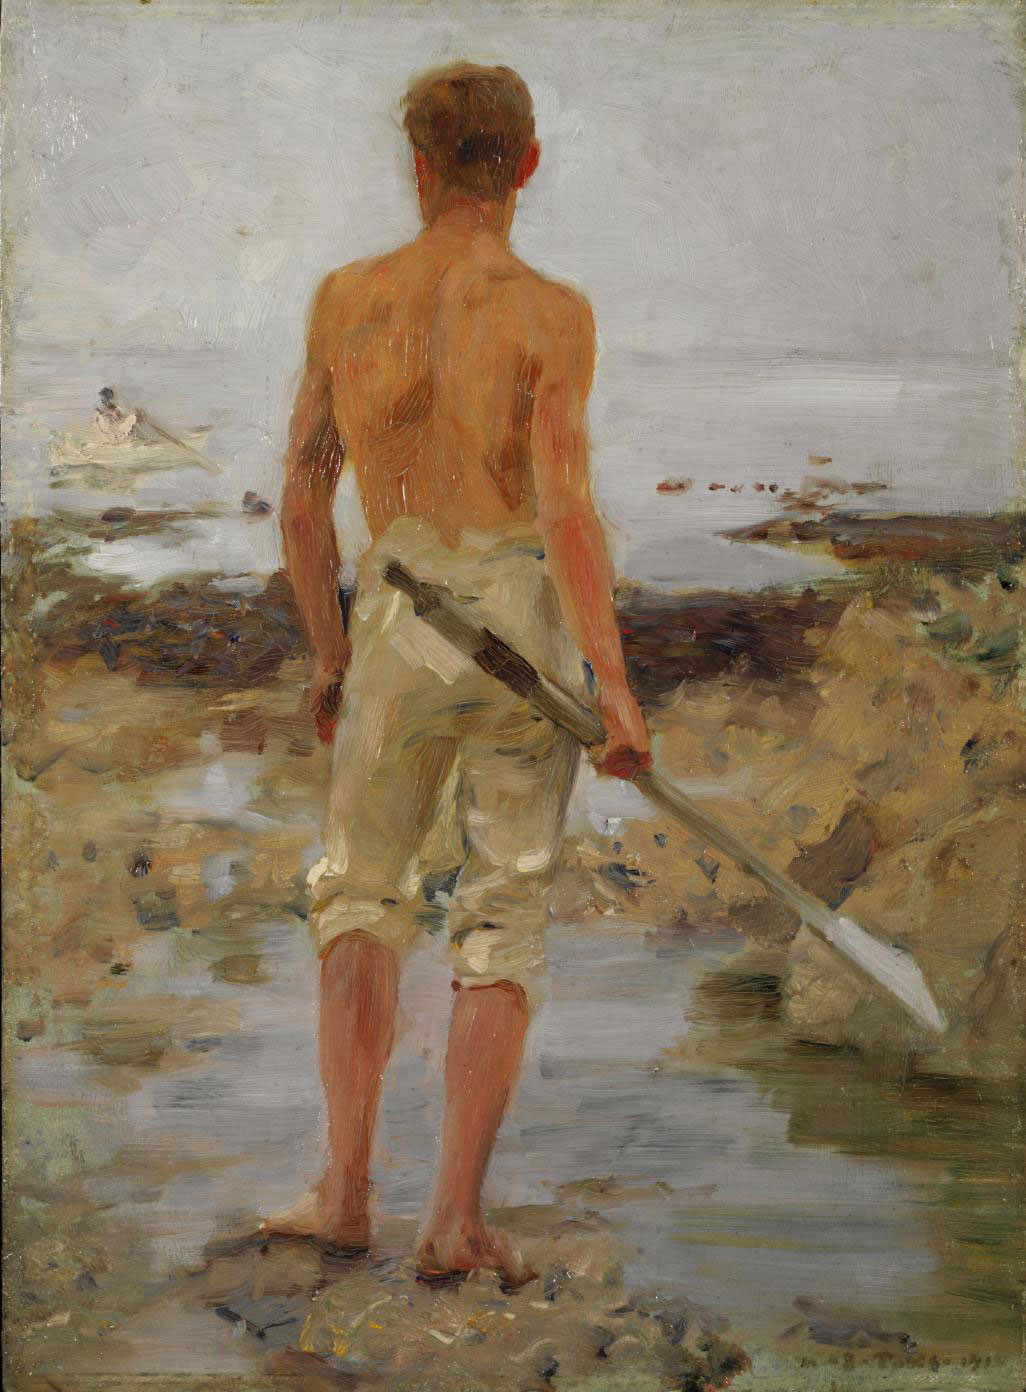 A boy with an oar